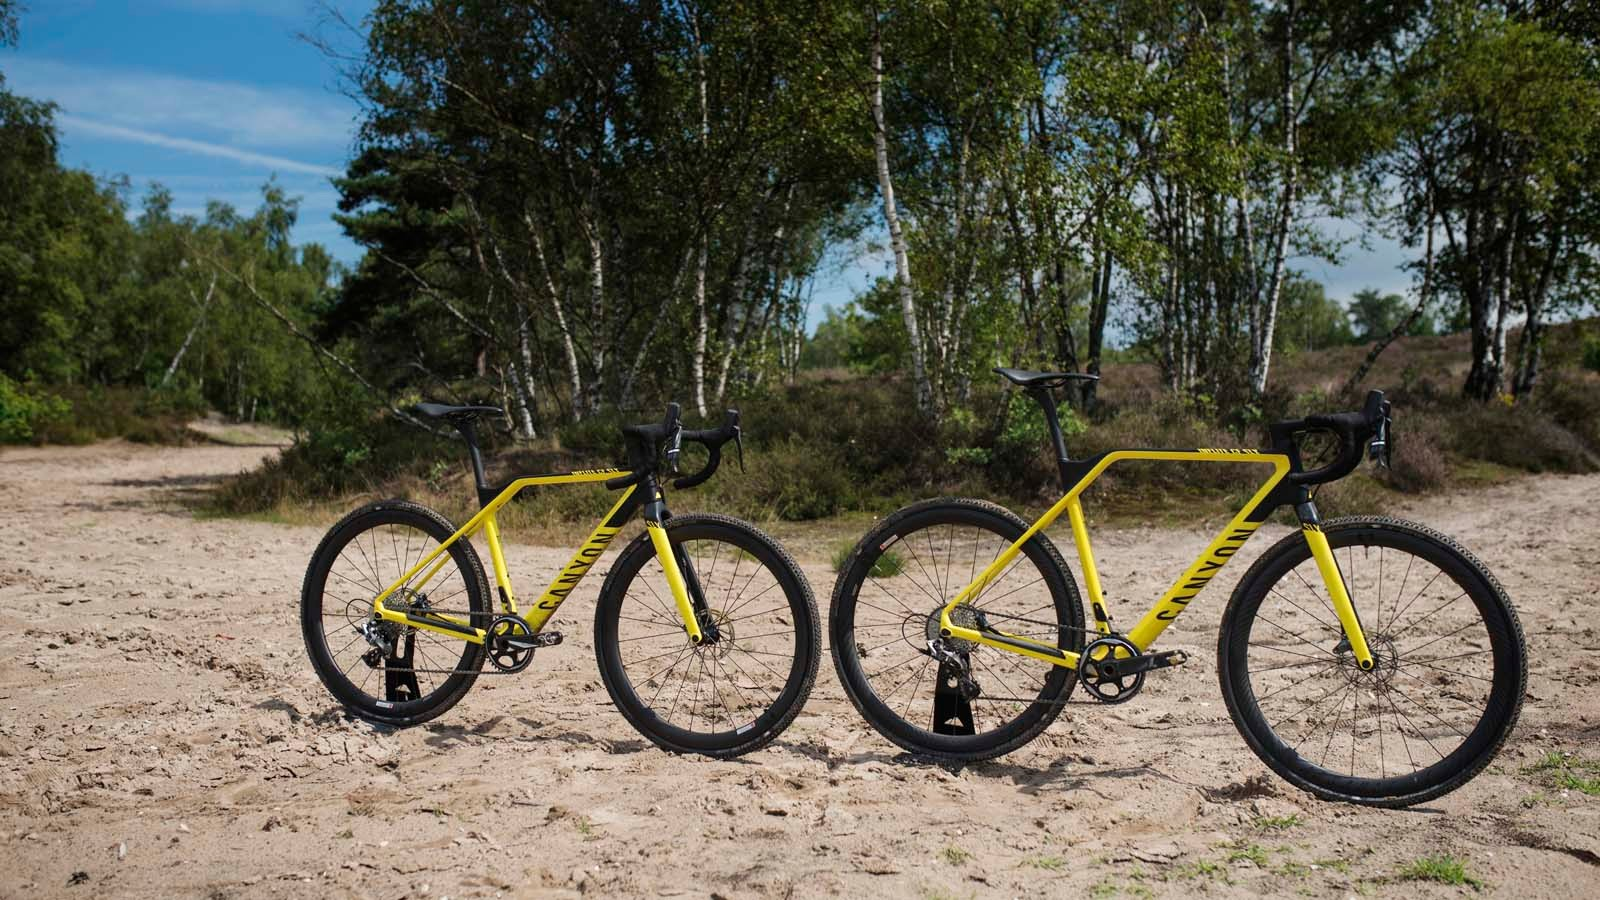 The two smallest frame sizes (3XS and 2XS) of the 8 offered use 650B wheels to offer consistent performance for smaller riders. At right is a 3XL bike